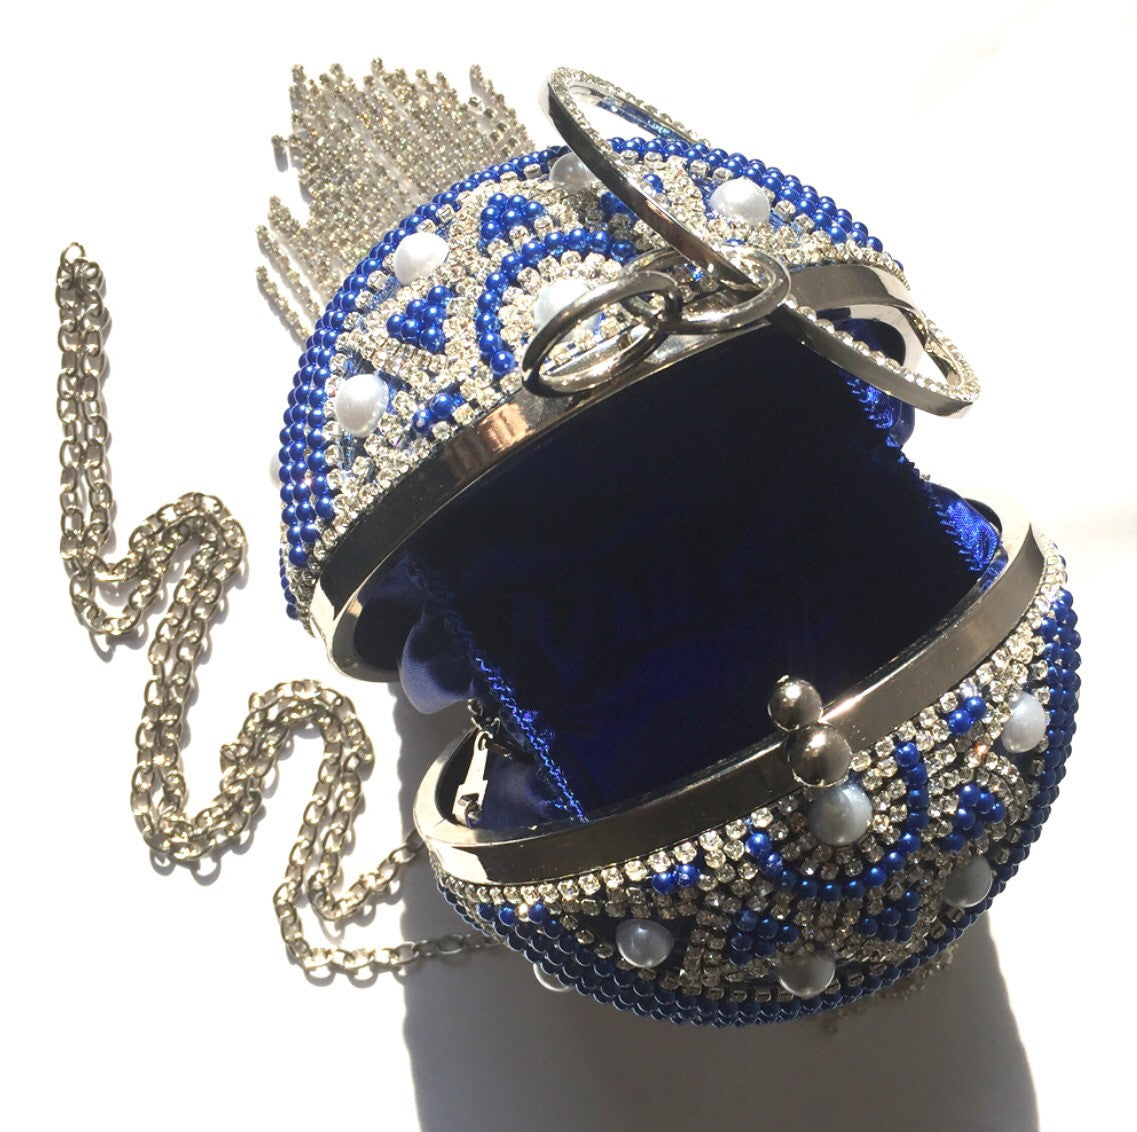 Ball Clutch Bag, Blue Clutch Bag, Rhinestone Clutch Purse